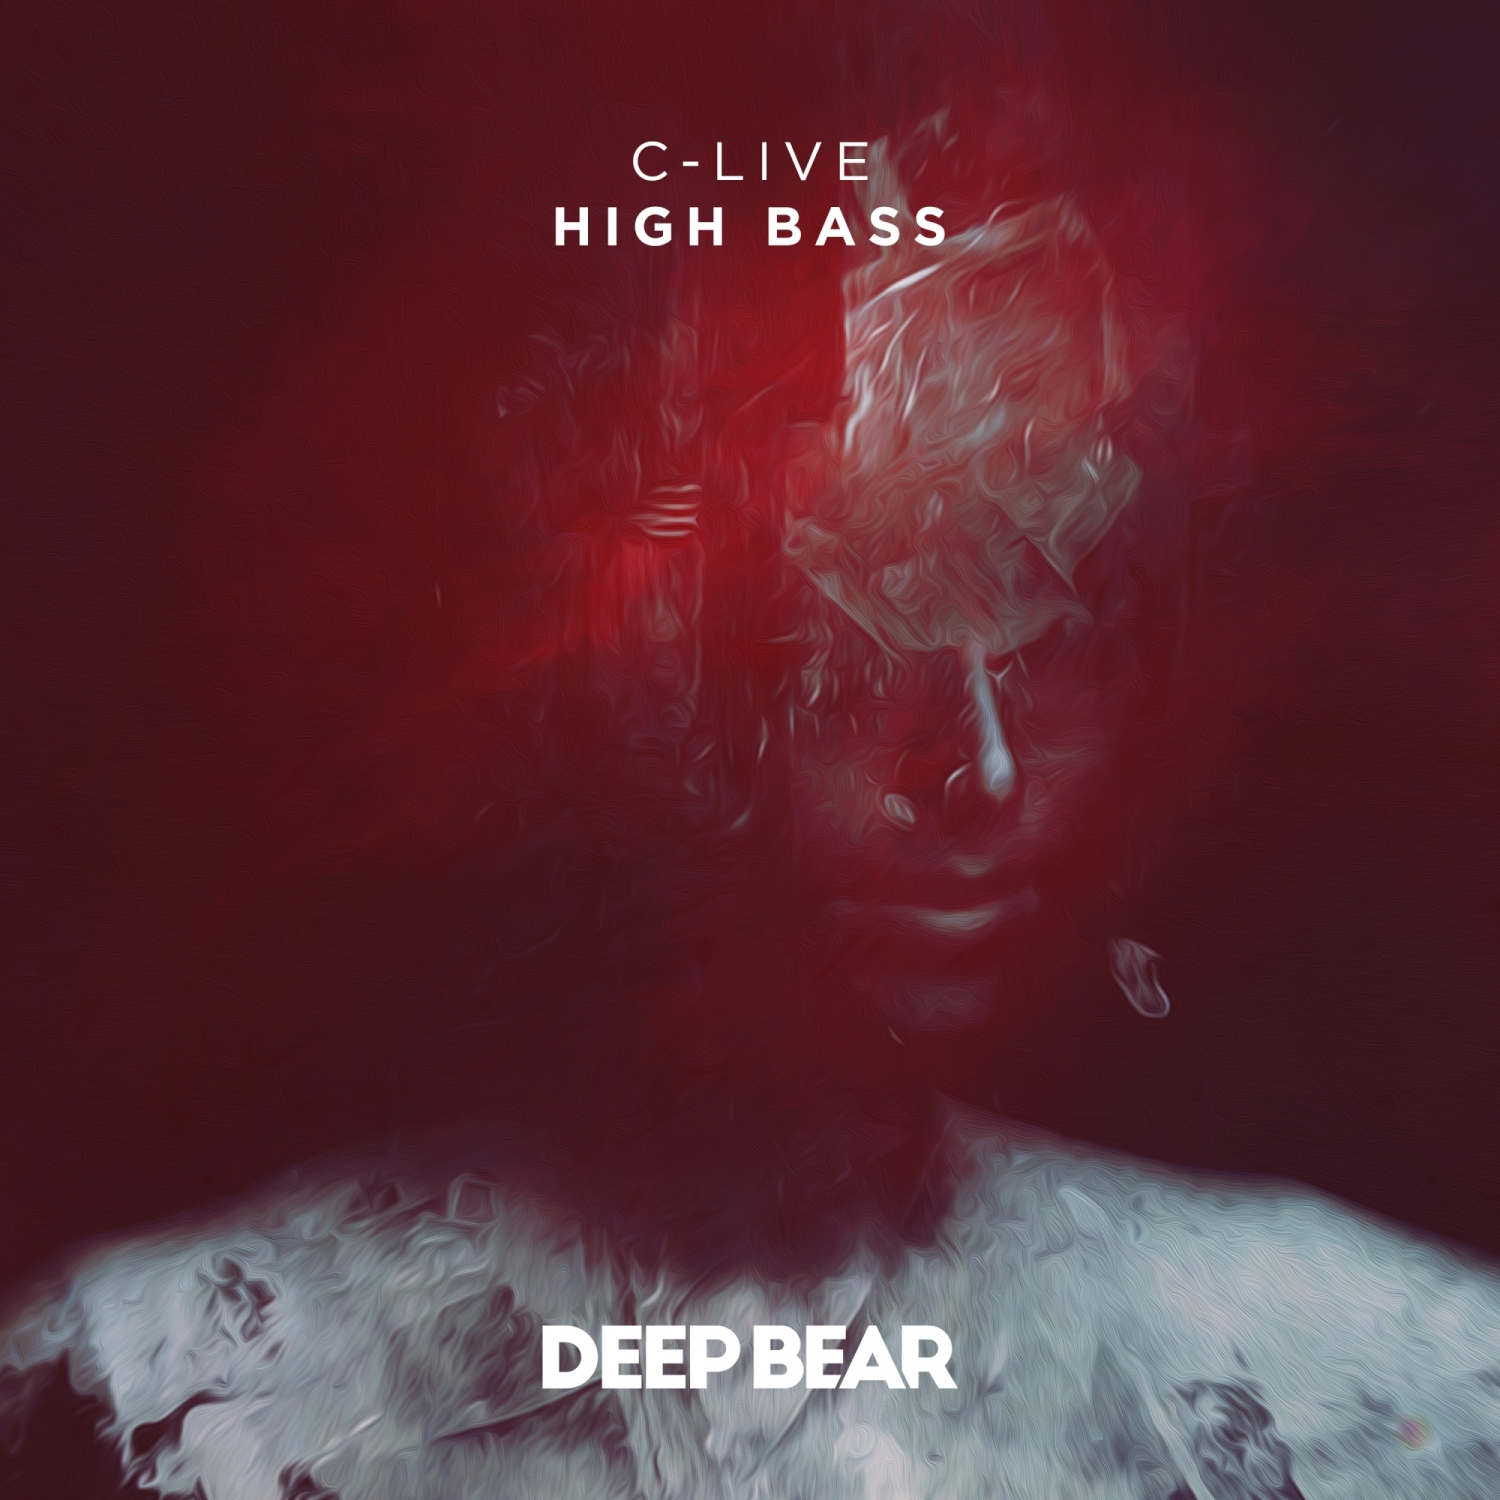 C-LIVE - High Bass (Original Mix)